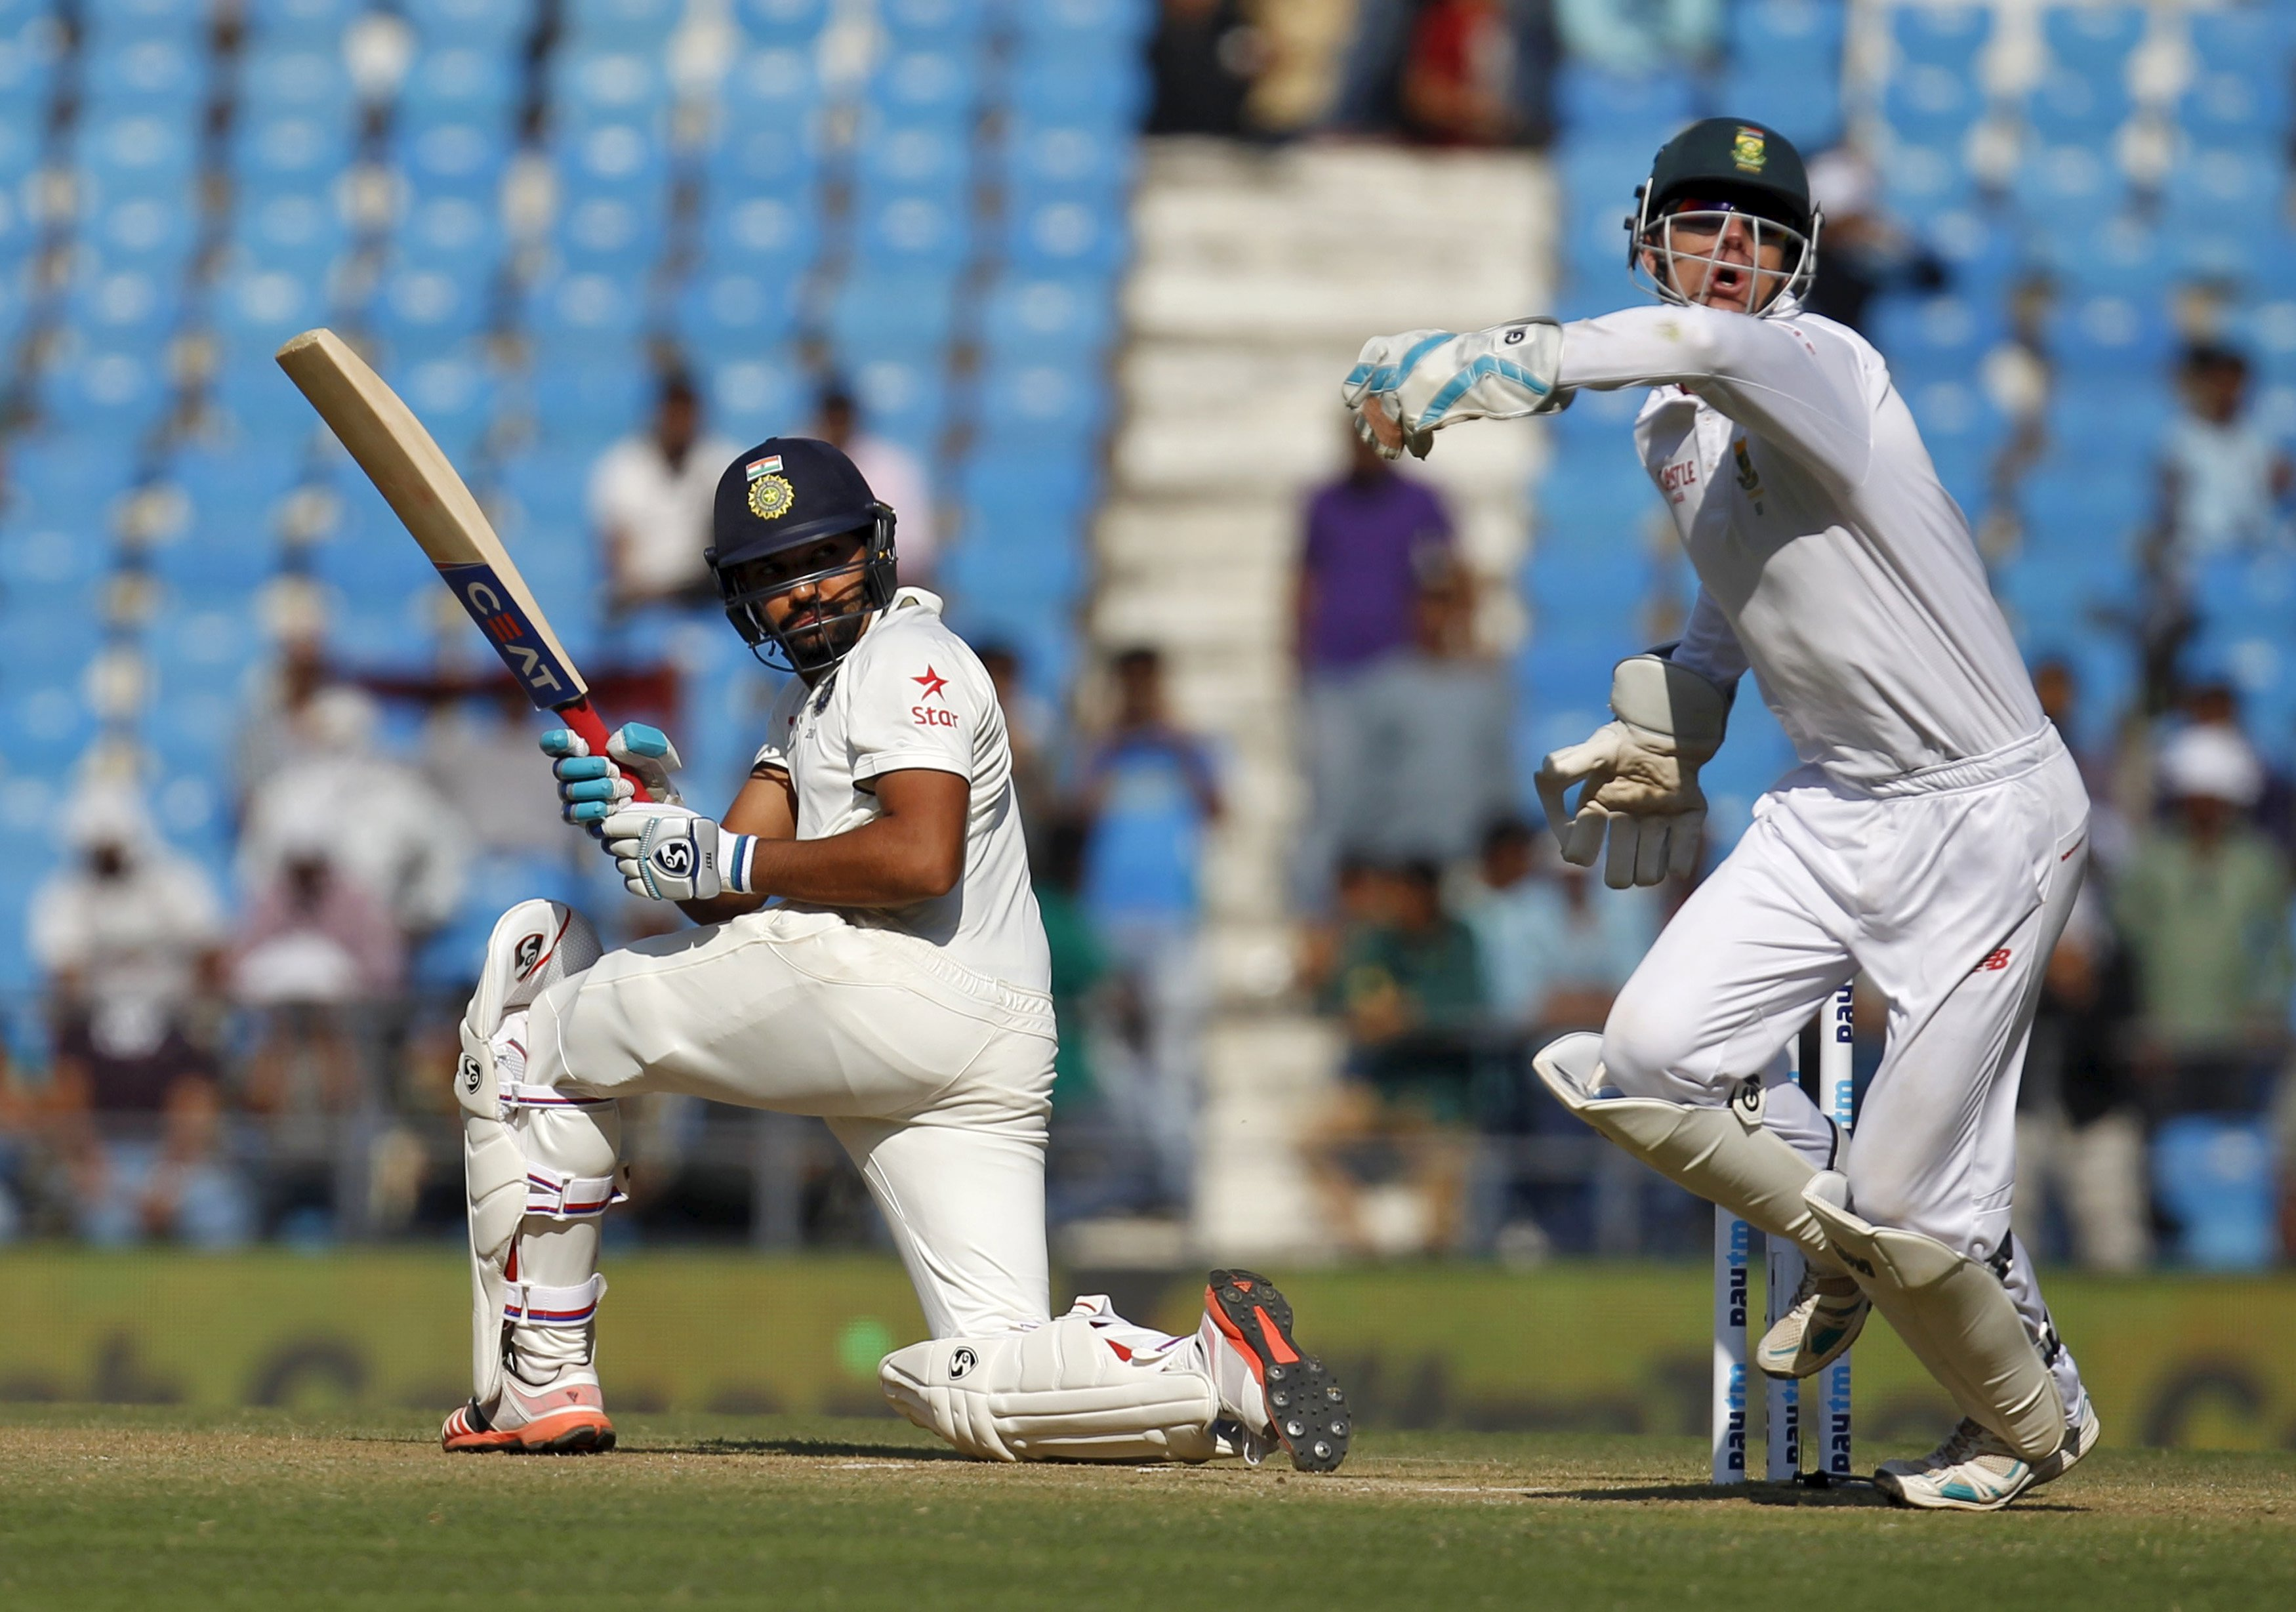 India's Rohit Sharma (L) plays a shot past South Africa's wicketkeeper Dane Vilas during the second day of their third test cricket match in Nagpur, India, November 26, 2015.  REUTERS/Amit Dave